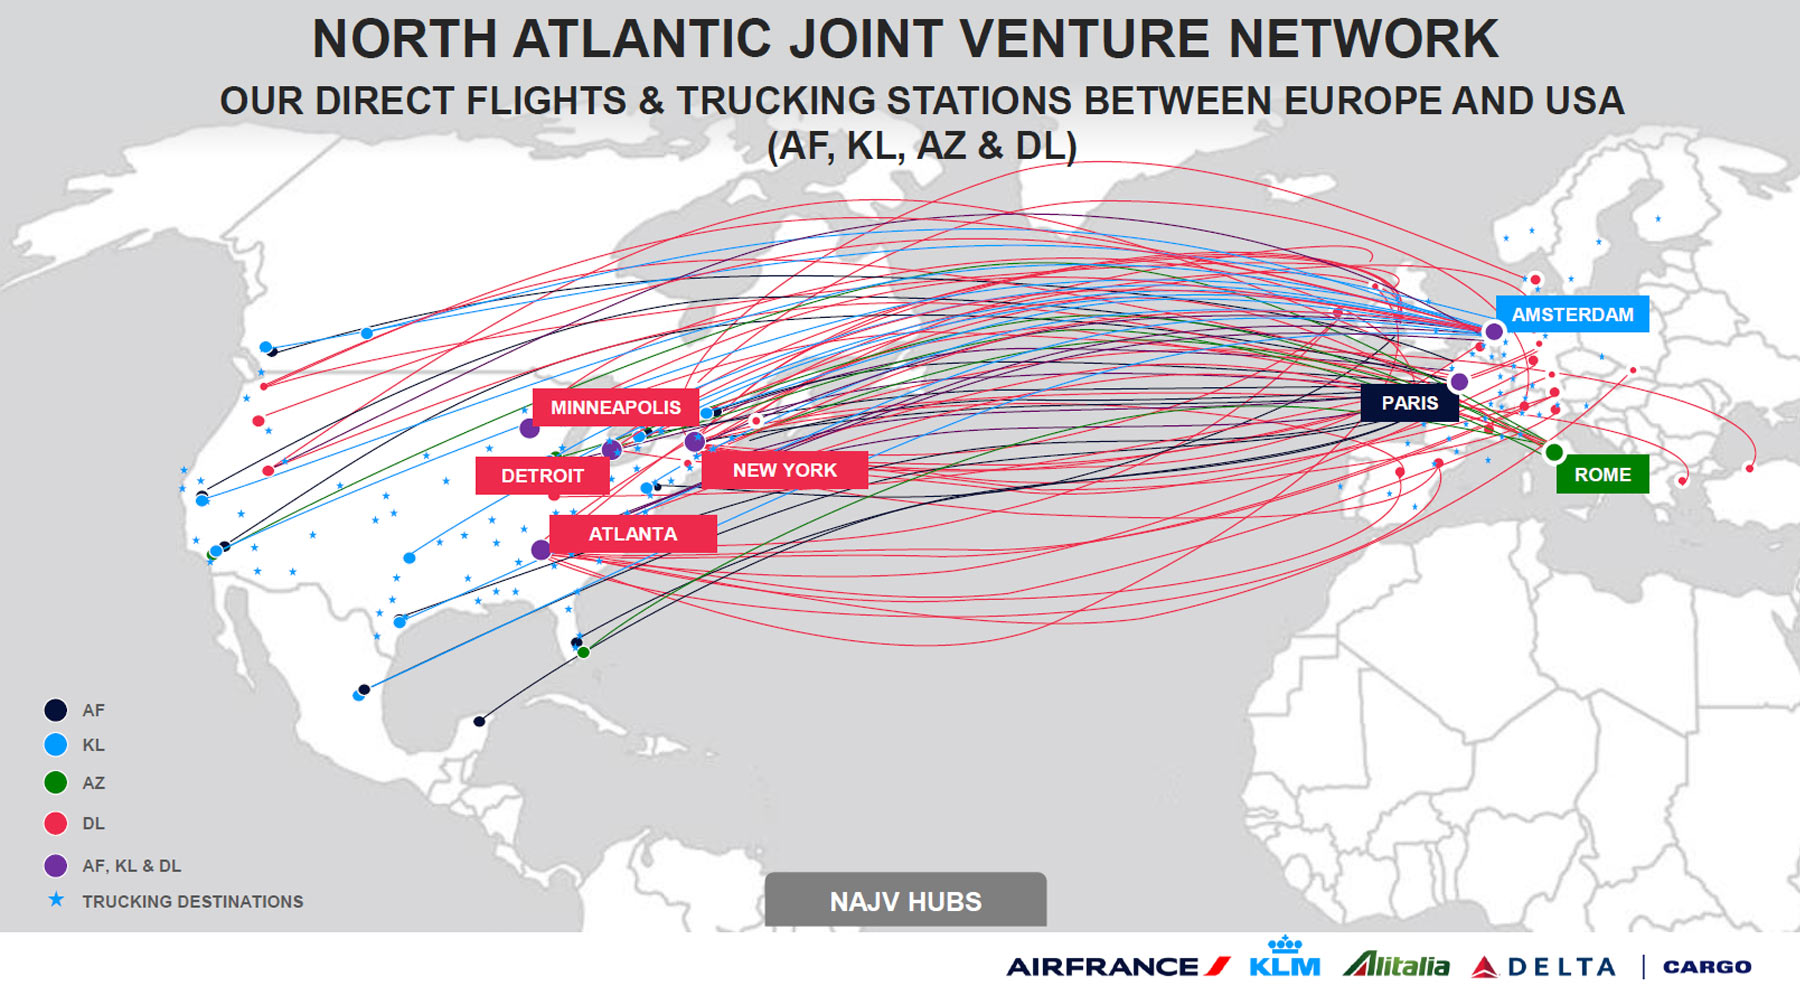 AIR FRANCE KLM MARTINAIR Cargo - North Atlantic Joint Venture on